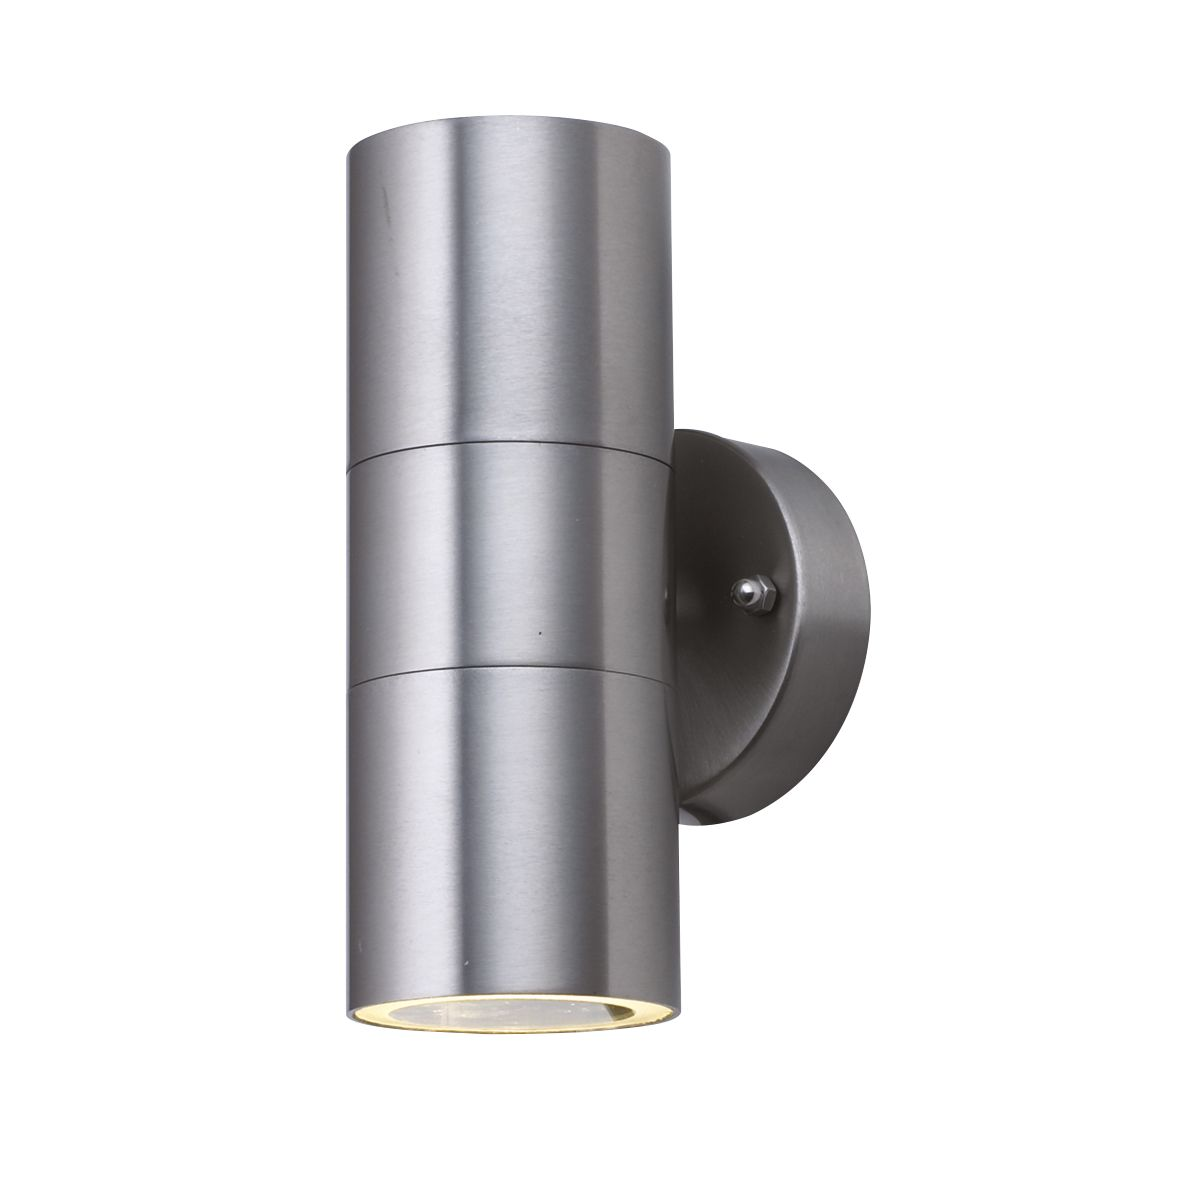 Led Stainless Steel Ip44 2 Light Outdoor Tube Wall Bracket